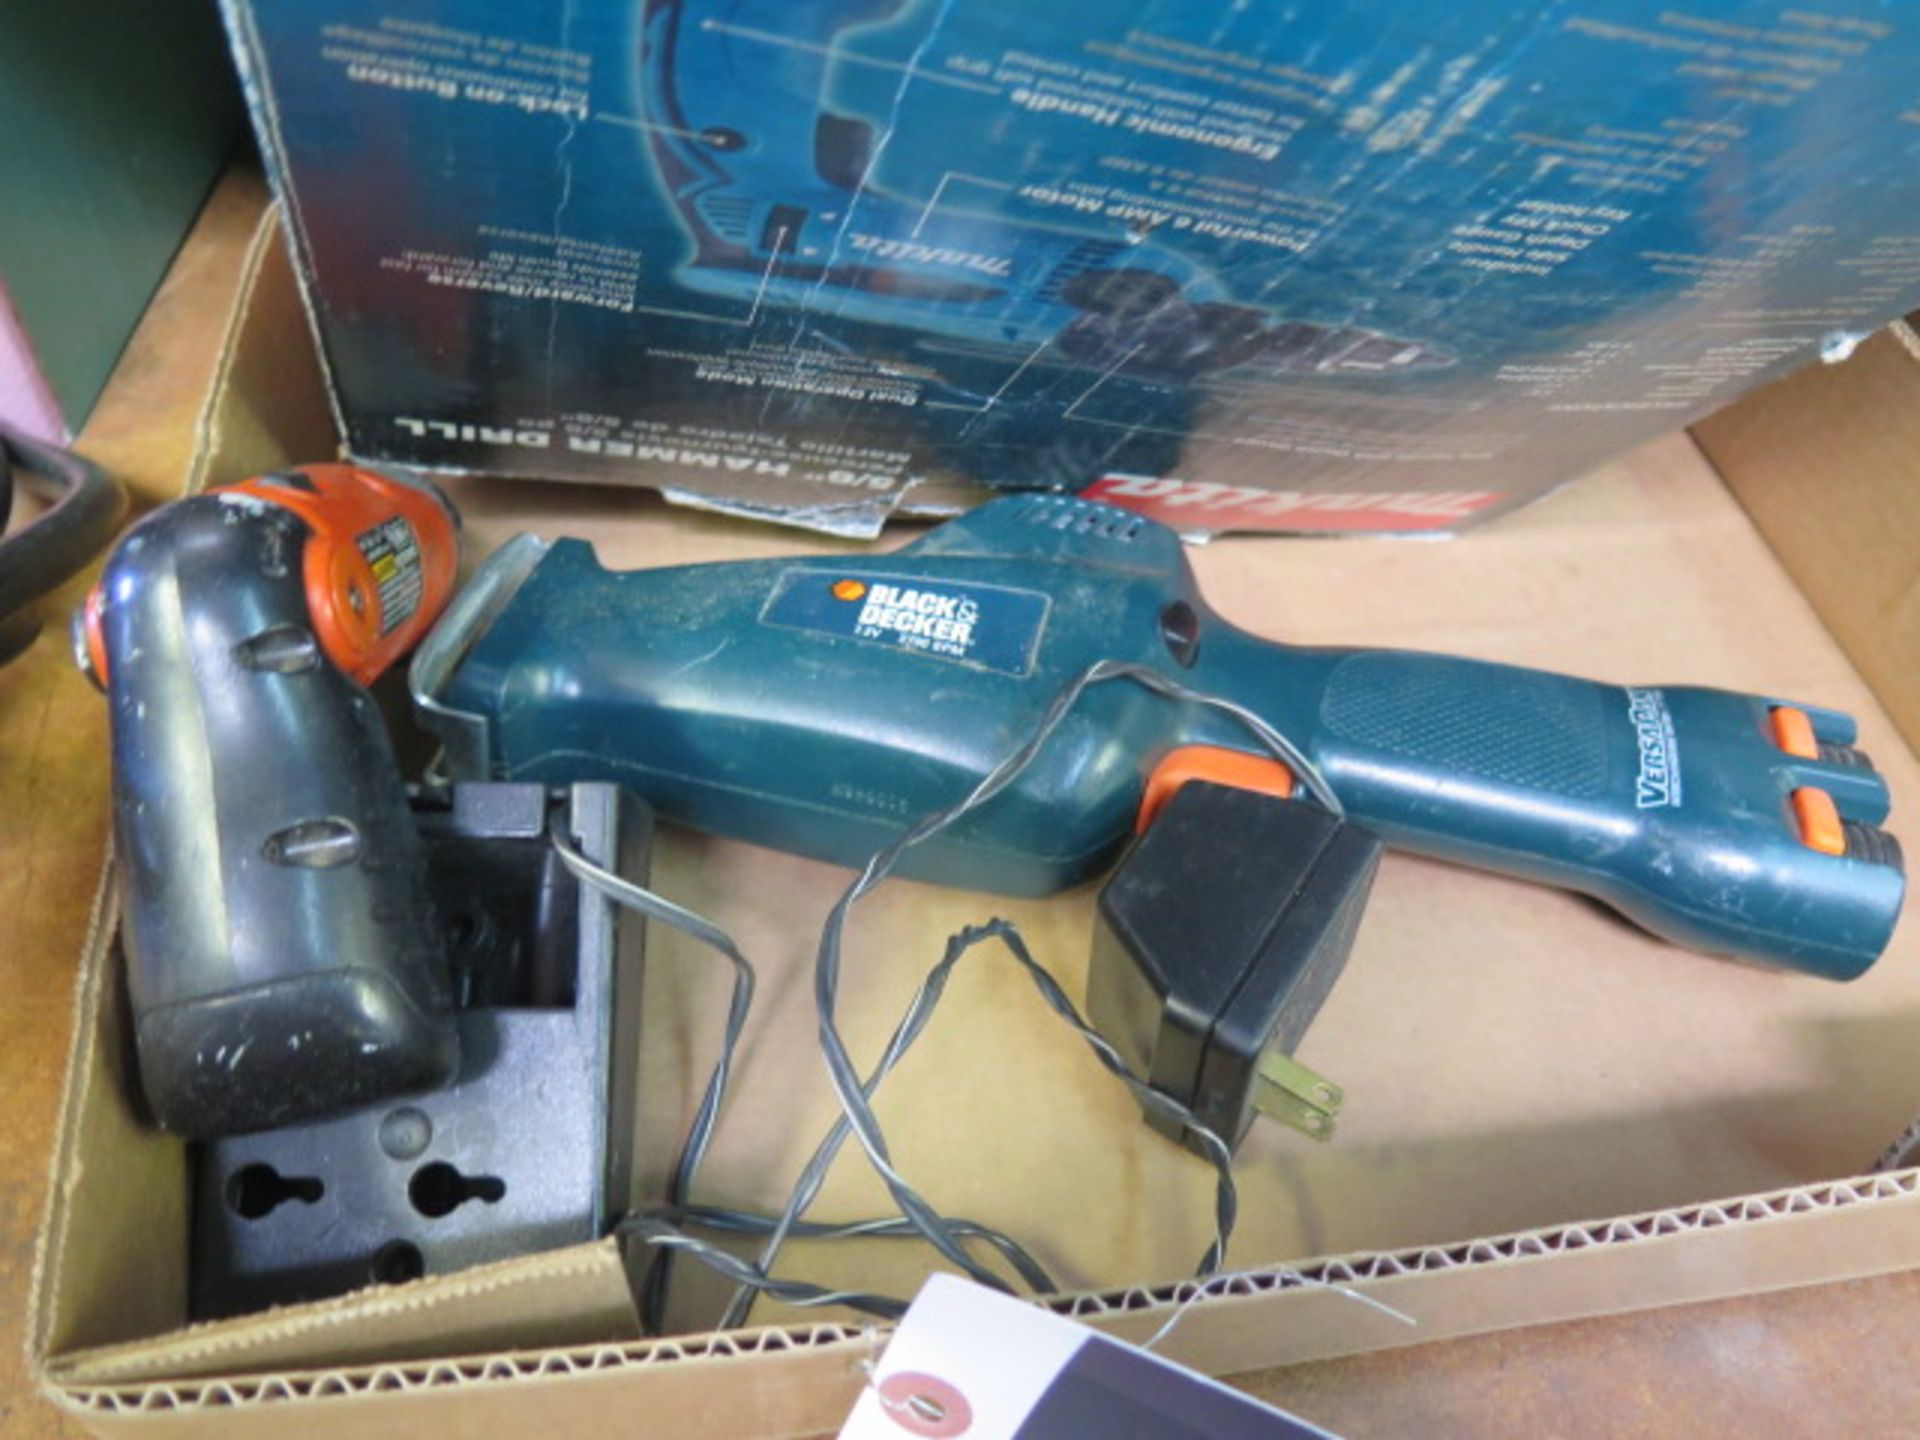 Lot 8 - Makita Hammer Drill and Black & Decker Cordless Jig Saw (SOLD AS-IS - NO WARRANTY)